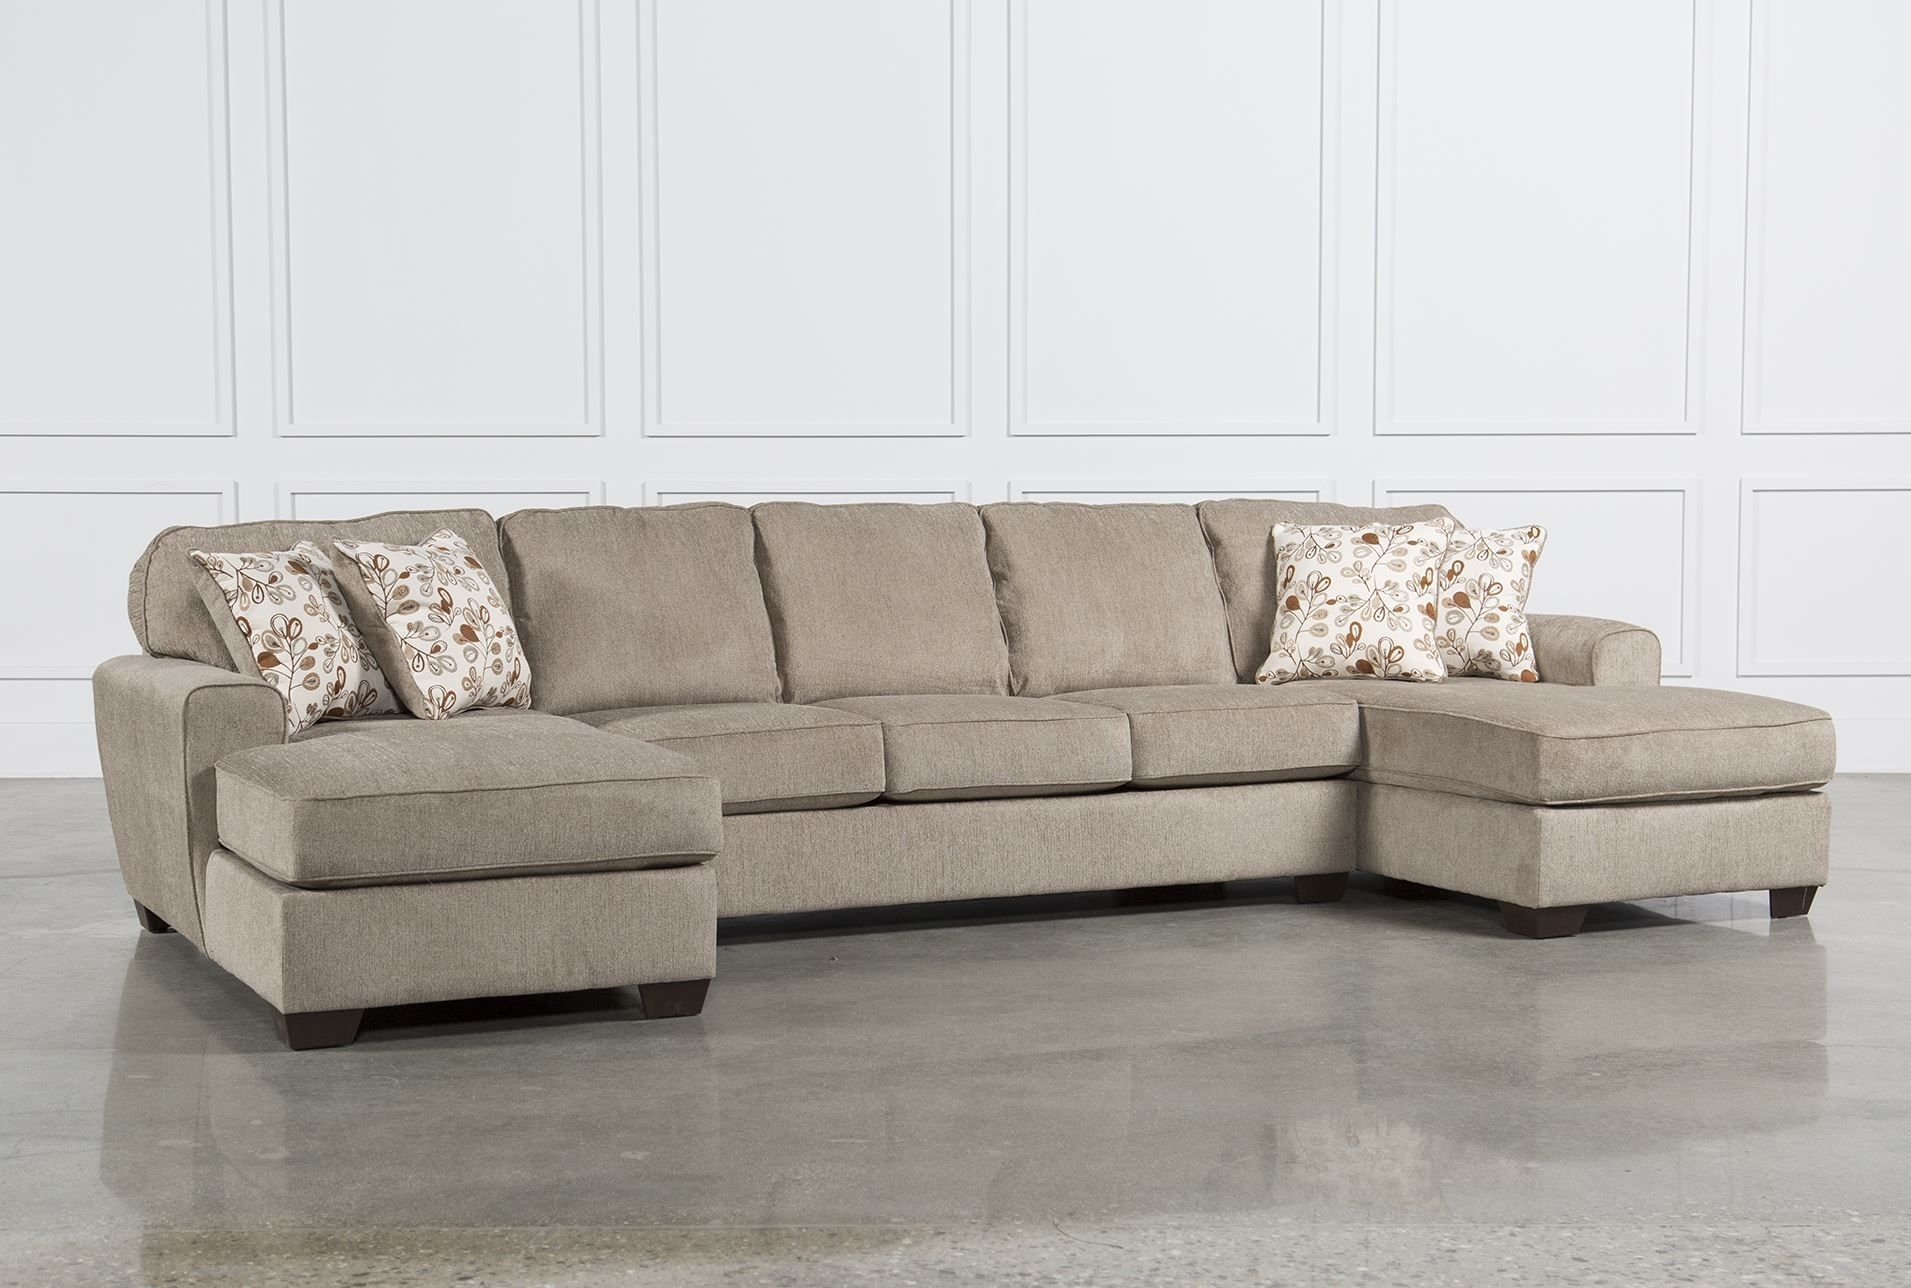 Patola Park 3 Piece Sectional W/2 Corner Chaises | Mountain Modern For Malbry Point 3 Piece Sectionals With Raf Chaise (Image 25 of 25)